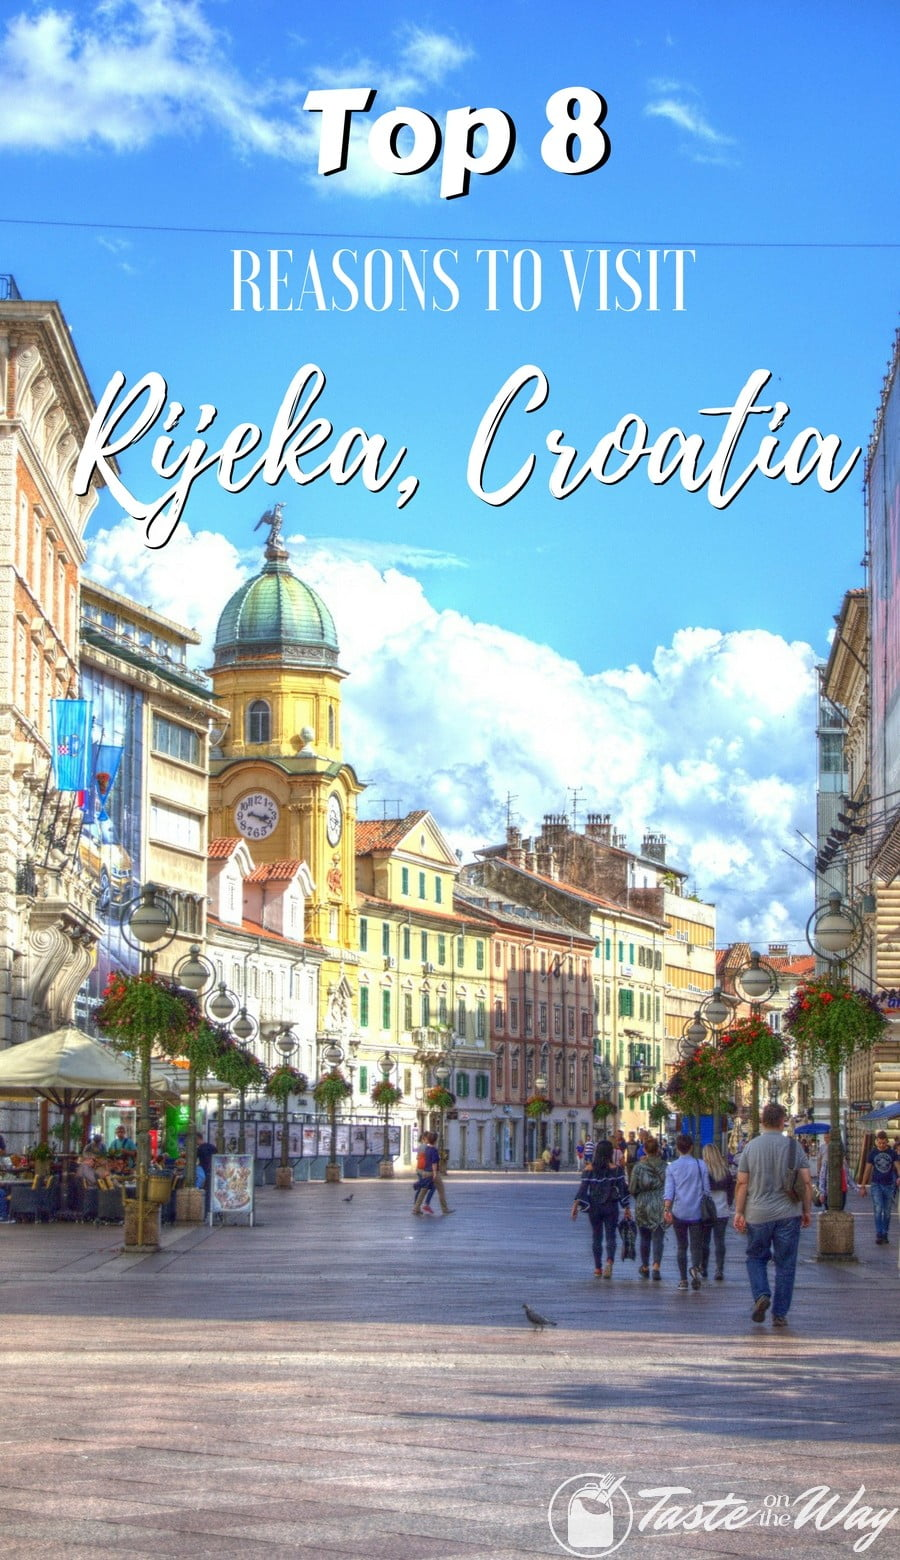 Check out the top 8 reasons to add #Rijeka to your #Croatia #itinerary #travel #photography @tasteontheway